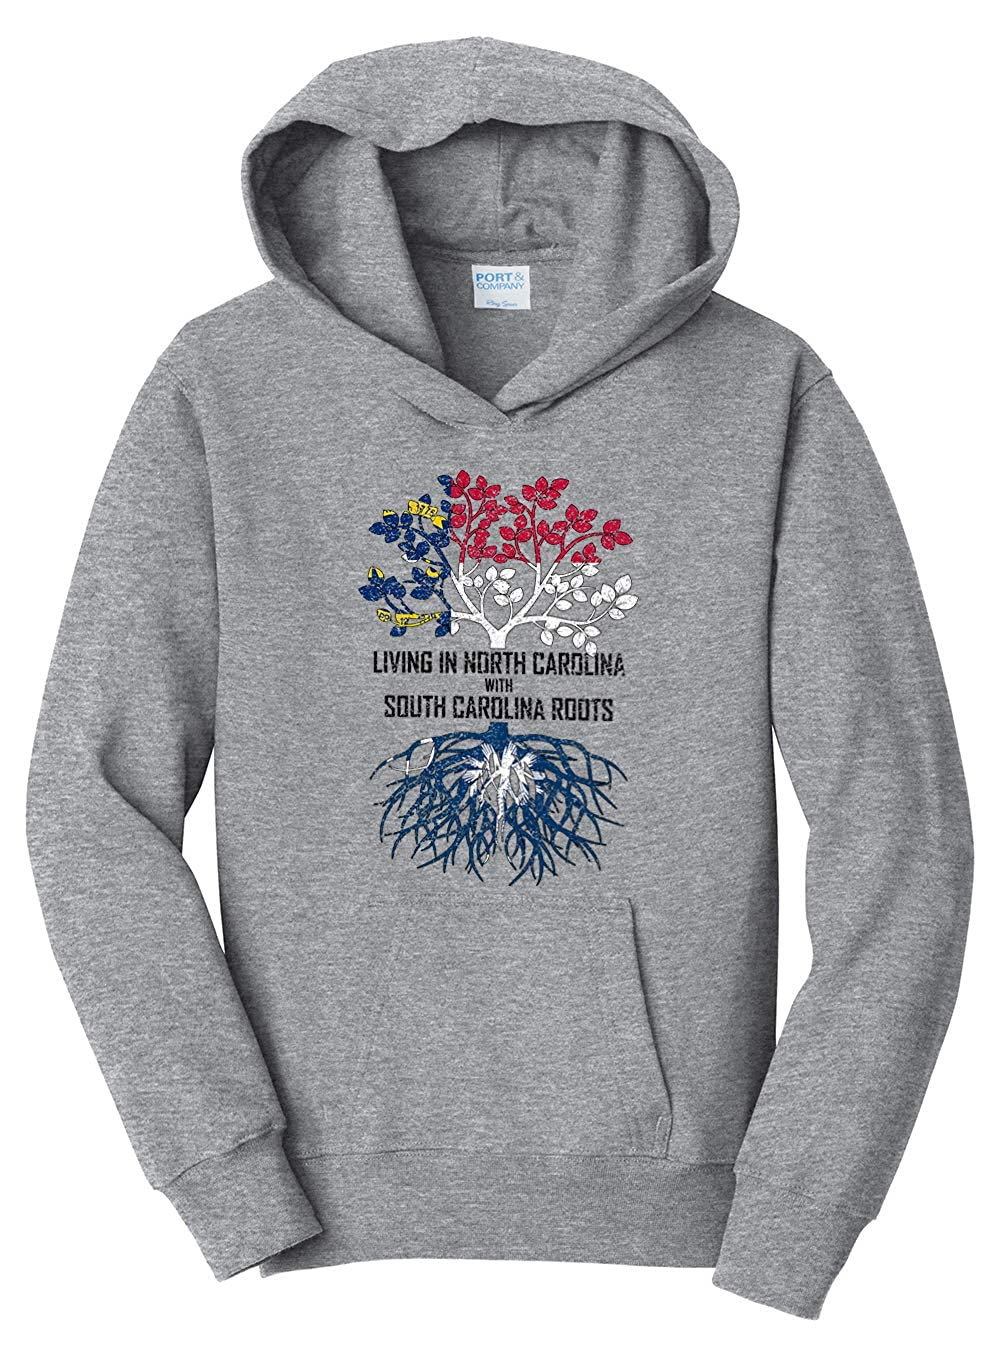 Tenacitee Girls Living in North Carolina with South Carolina Roots Hooded Sweatshirt